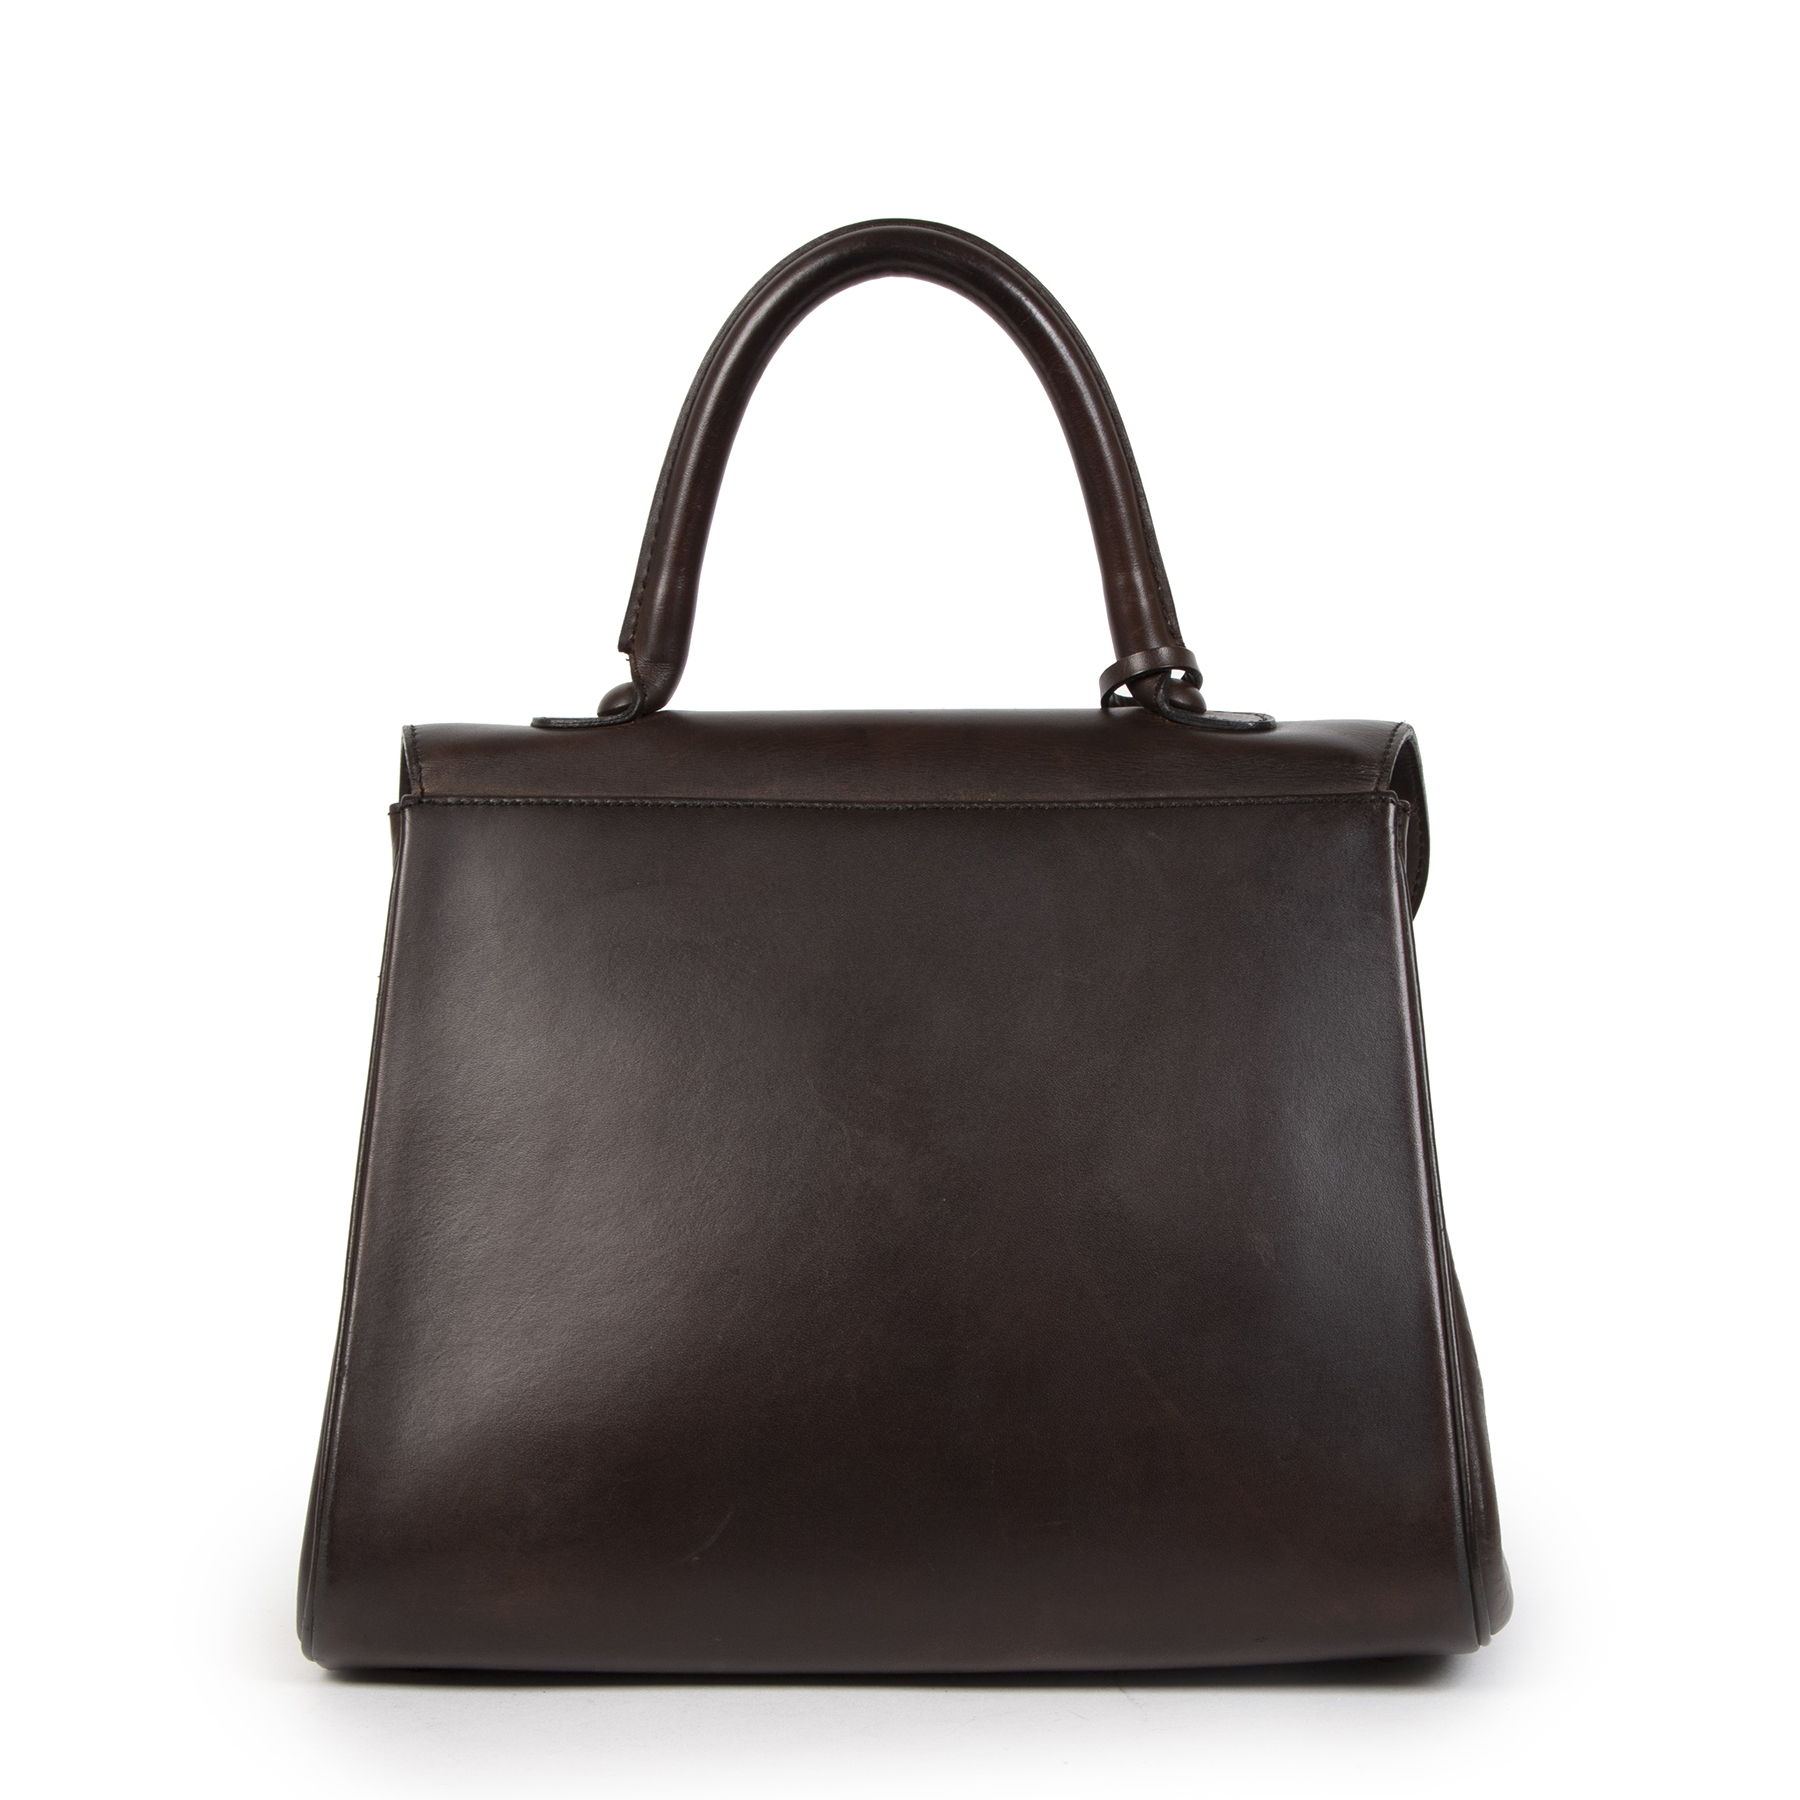 Buy authentic Delvaux bags online at LabelLOV Antwerp.